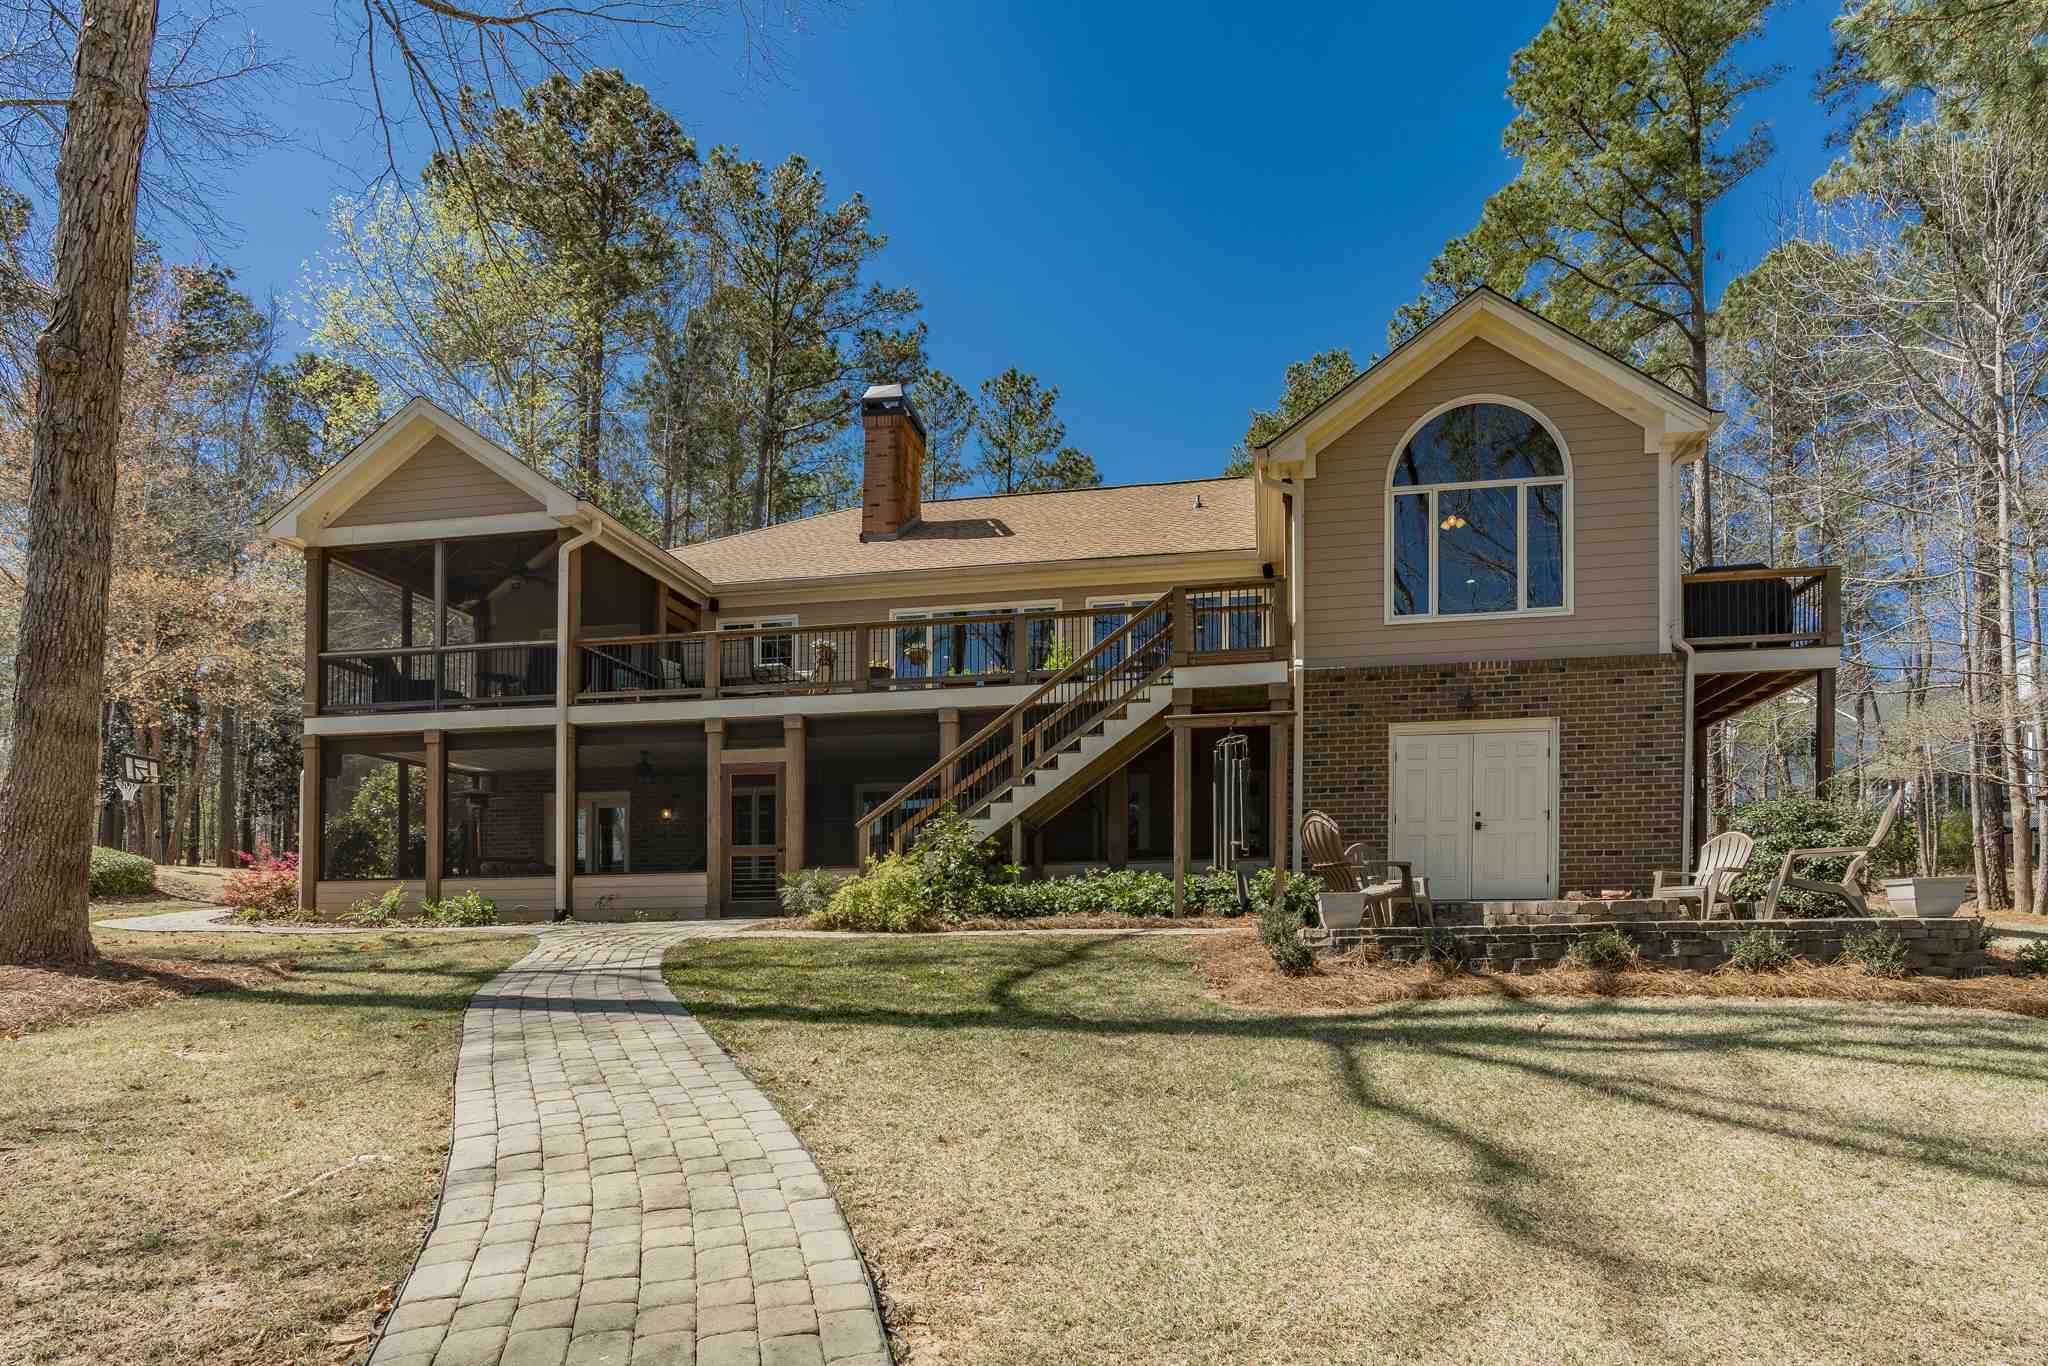 Relax in this newly renovated lakefront home. This 4,311 sq. ft. ranch with full finished basement is the perfect cozy Lake Oconee retreat. Virtually rebuilt and upgraded in 2013 to create a modern open floor plan, the home includes an expanded 2+ car garage and a new Trex max dock. The all new chef's kitchen features all SS Thermador appliances including a 4-burner gas stove, 2 wall ovens, and a wine cooler. There is a separate formal dining room, and also a sunny lakefront breakfast room. A grill-porch off the kitchen makes outdoor cooking convenient. The MasterSuite on the Main Level includes an upgraded bath with free-standing tub, and a private screened porch. The Terrace Level has a great room, 2 guest rooms with en-suite baths, and a gracious screened porch with a hot tub. The home also offers much storage space, and a workshop. A golf membership is available.